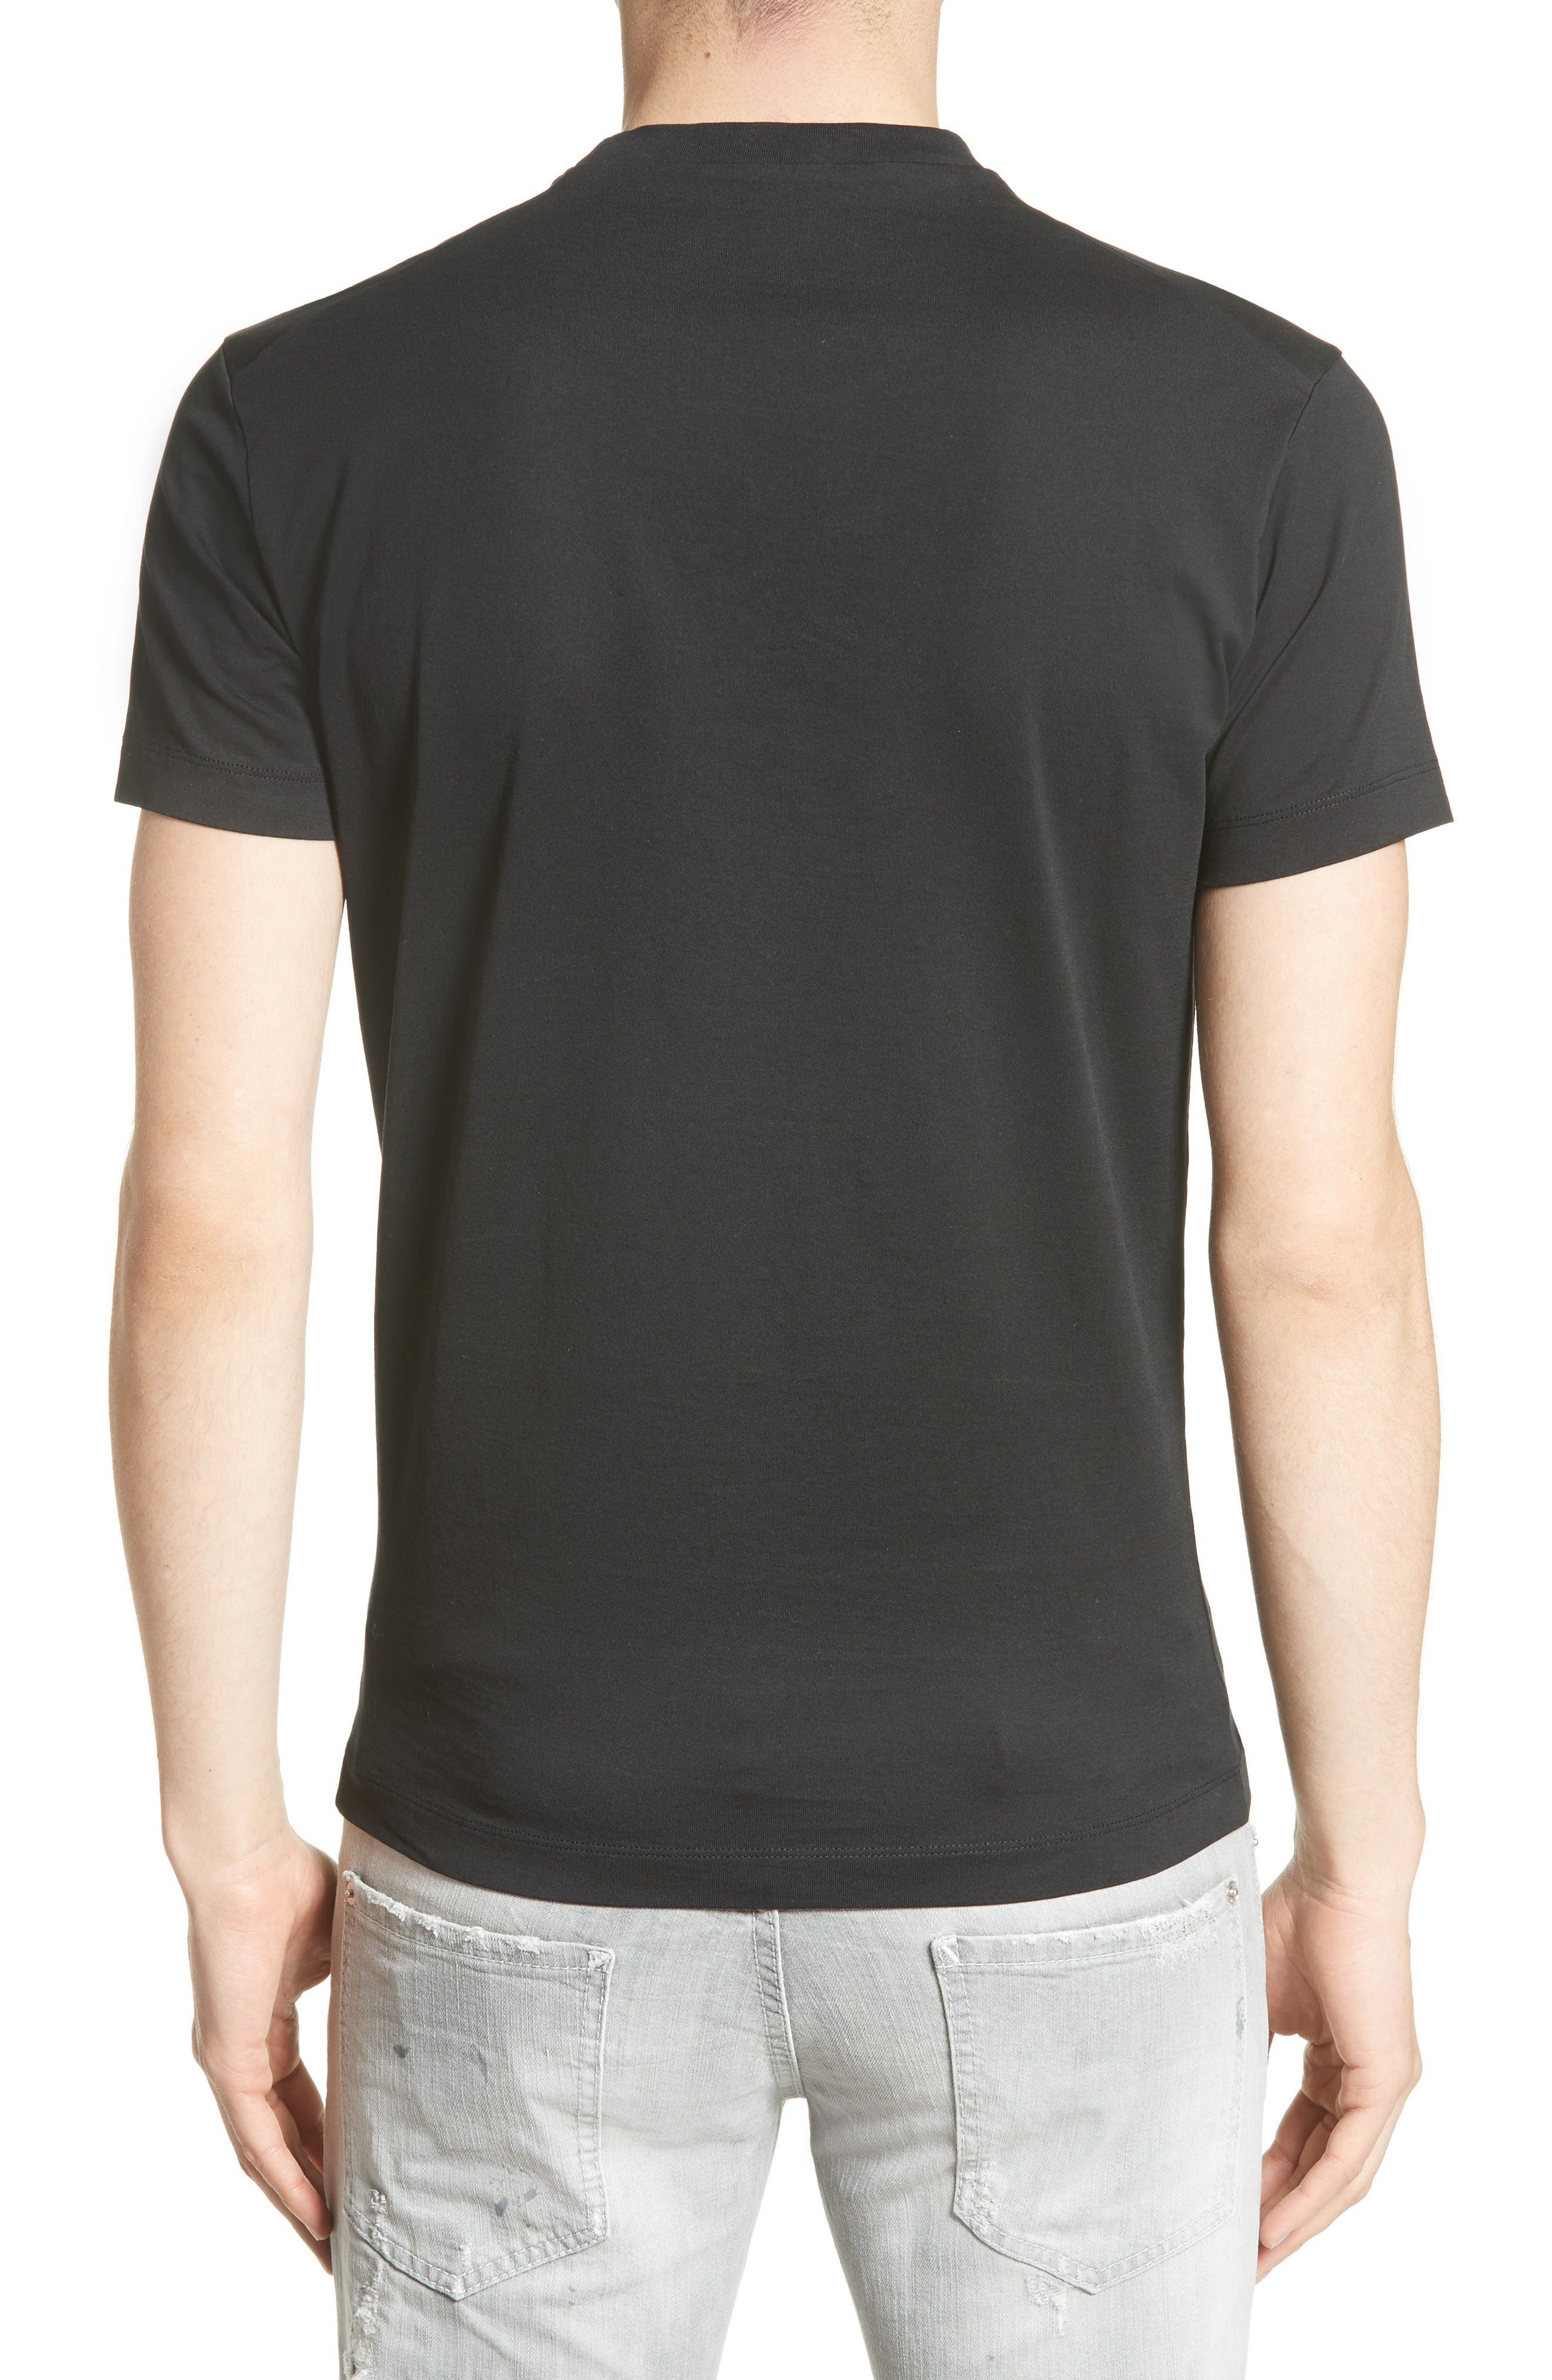 Topographic Graphic T-Shirt,                             Alternate thumbnail 2, color,                             Black